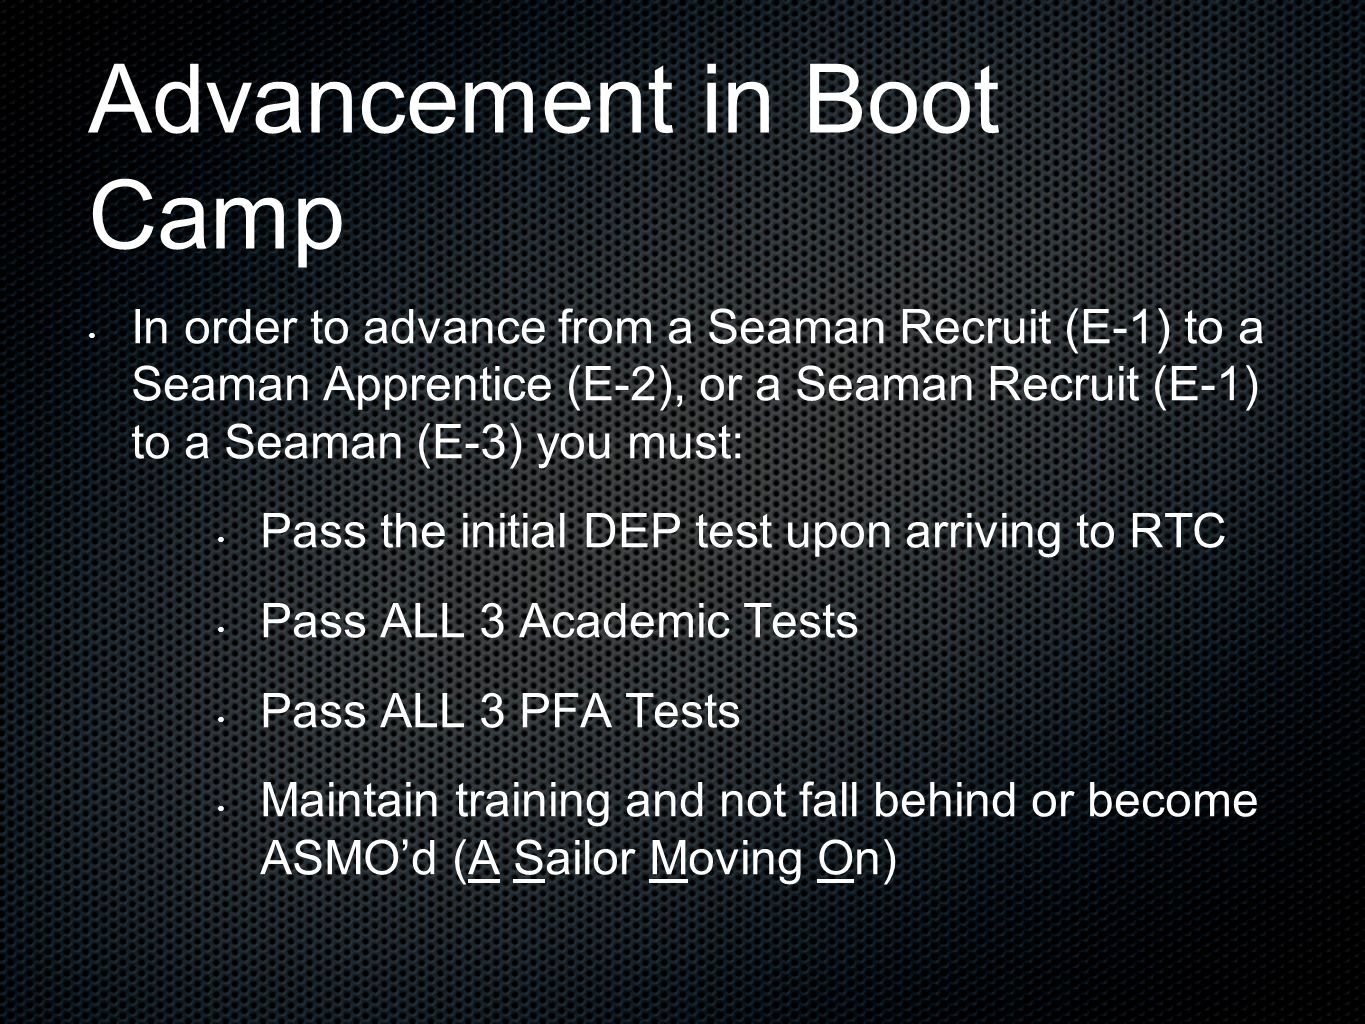 Advancement in Boot Camp